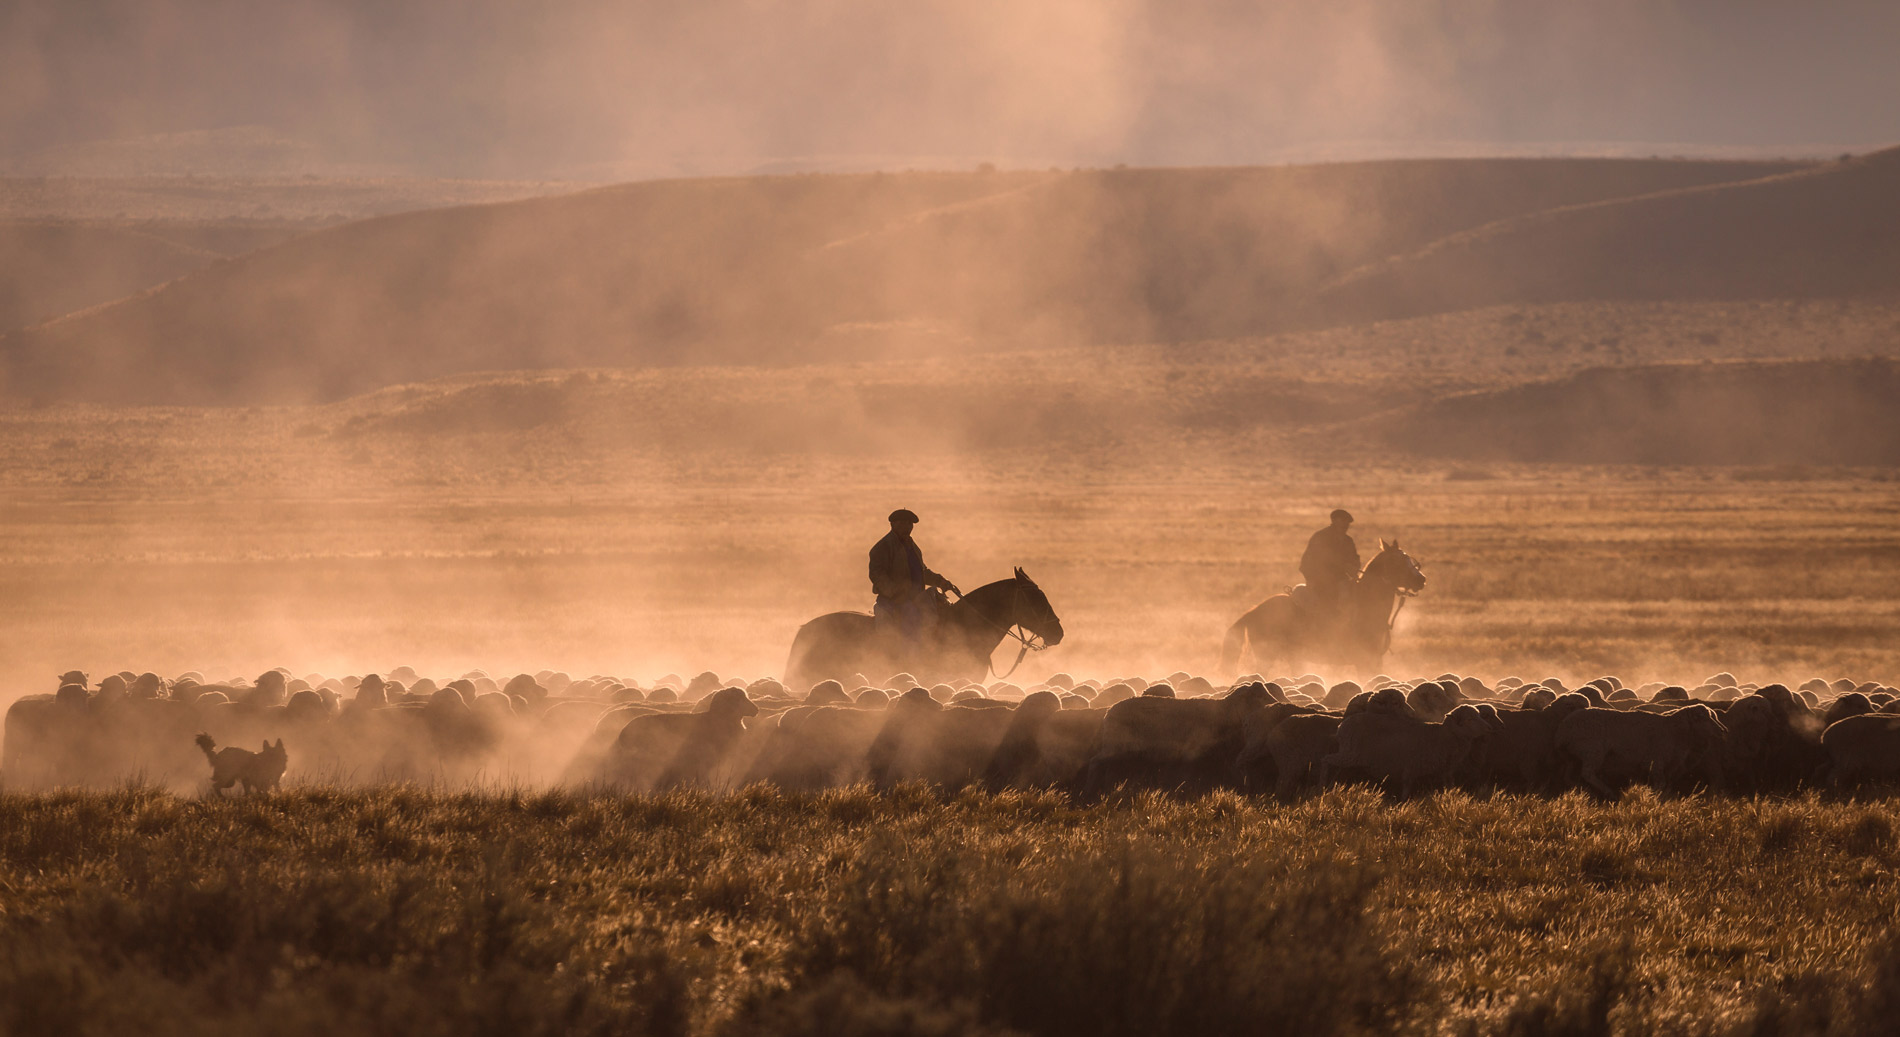 Get the full cowboy experience in Estancia just outside of Buenos Aires